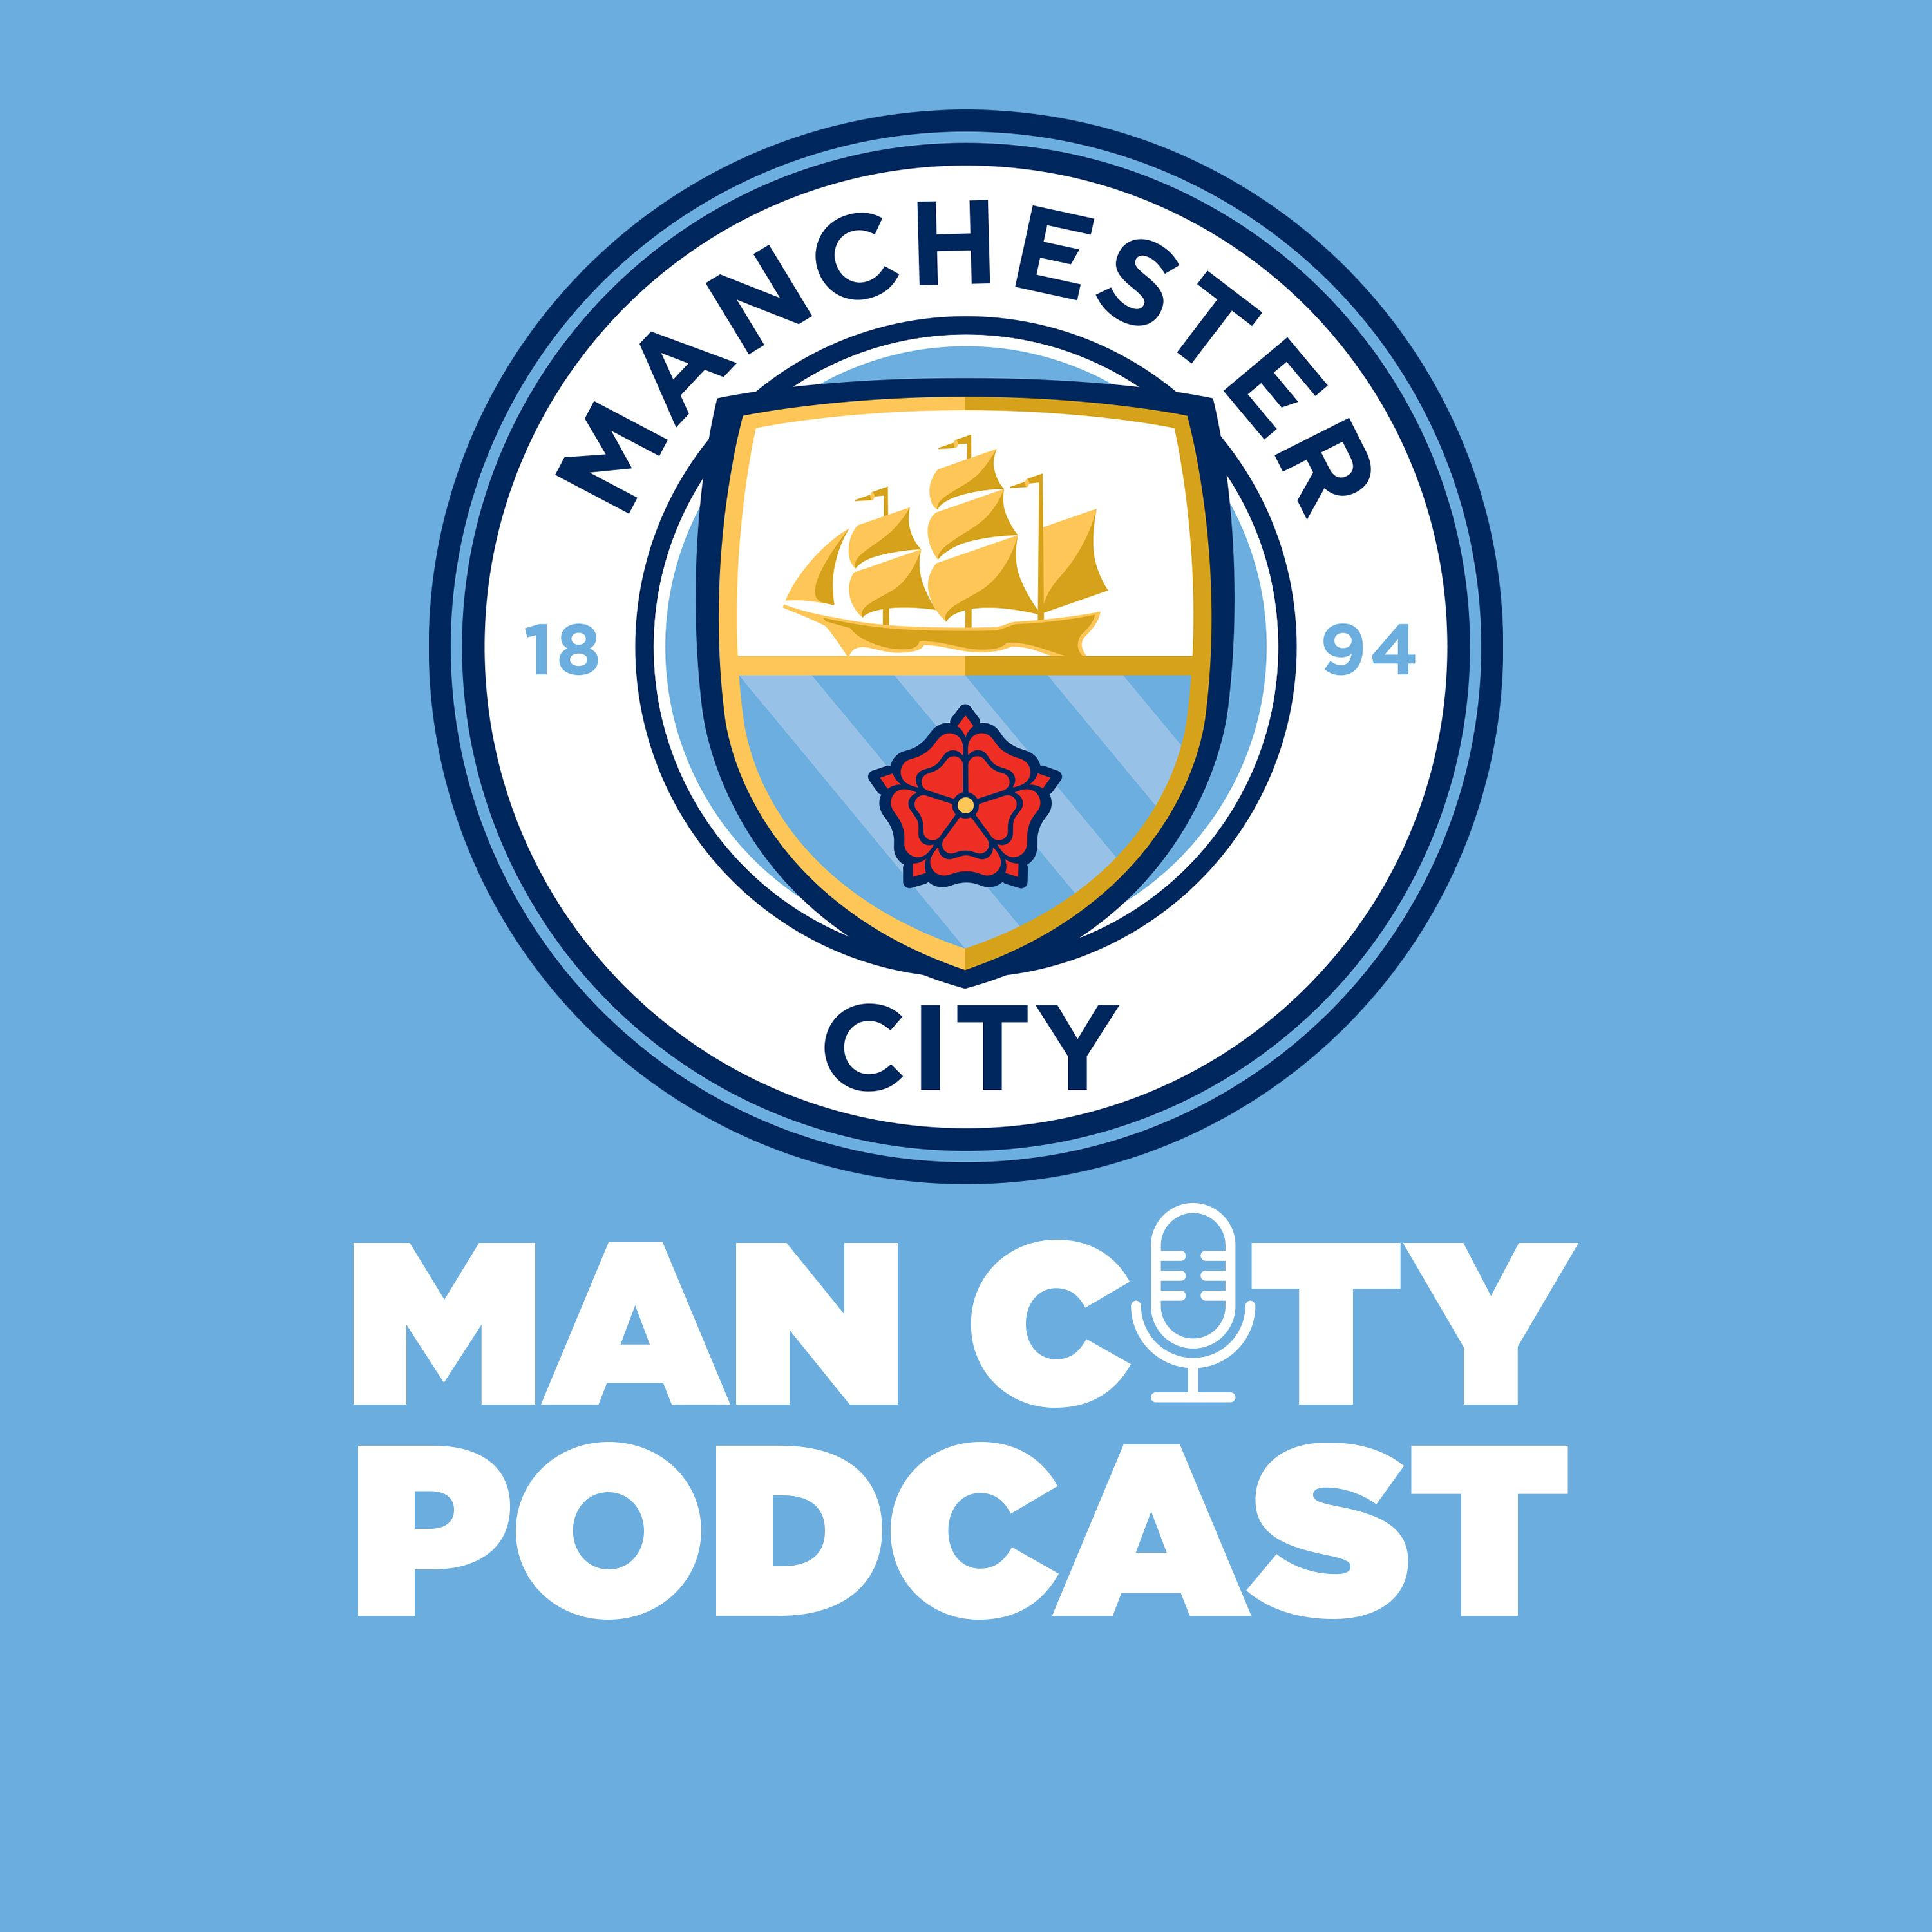 Dennis Tueart | The Official Man City Podcast